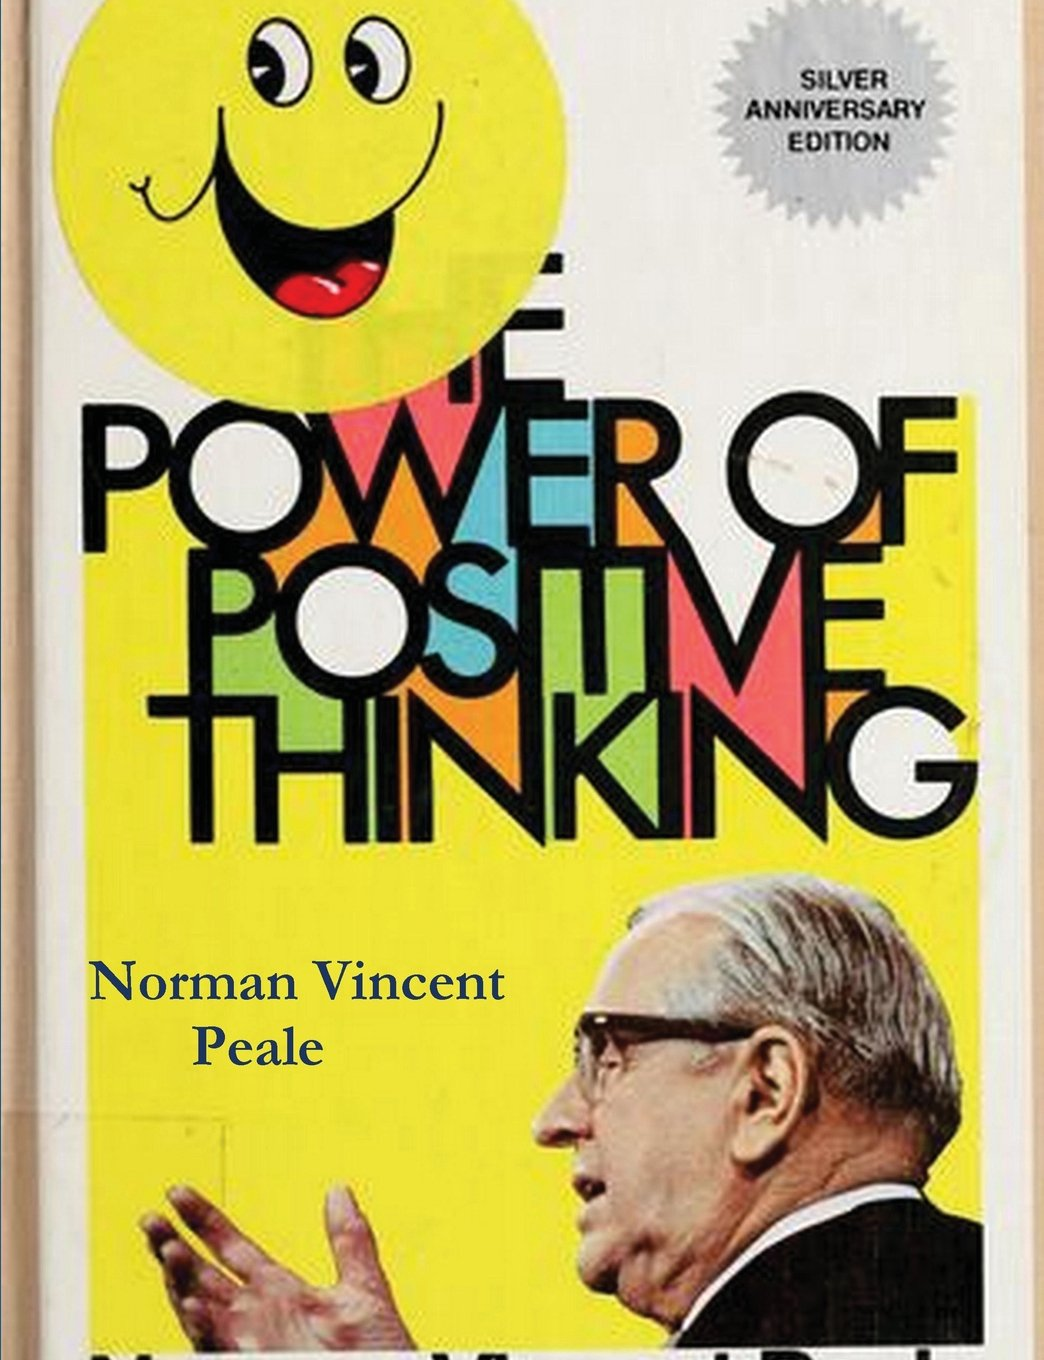 the power of positive thinking reverend dr norman vincent peale the power of positive thinking reverend dr norman vincent peale 9788087888230 amazon com books